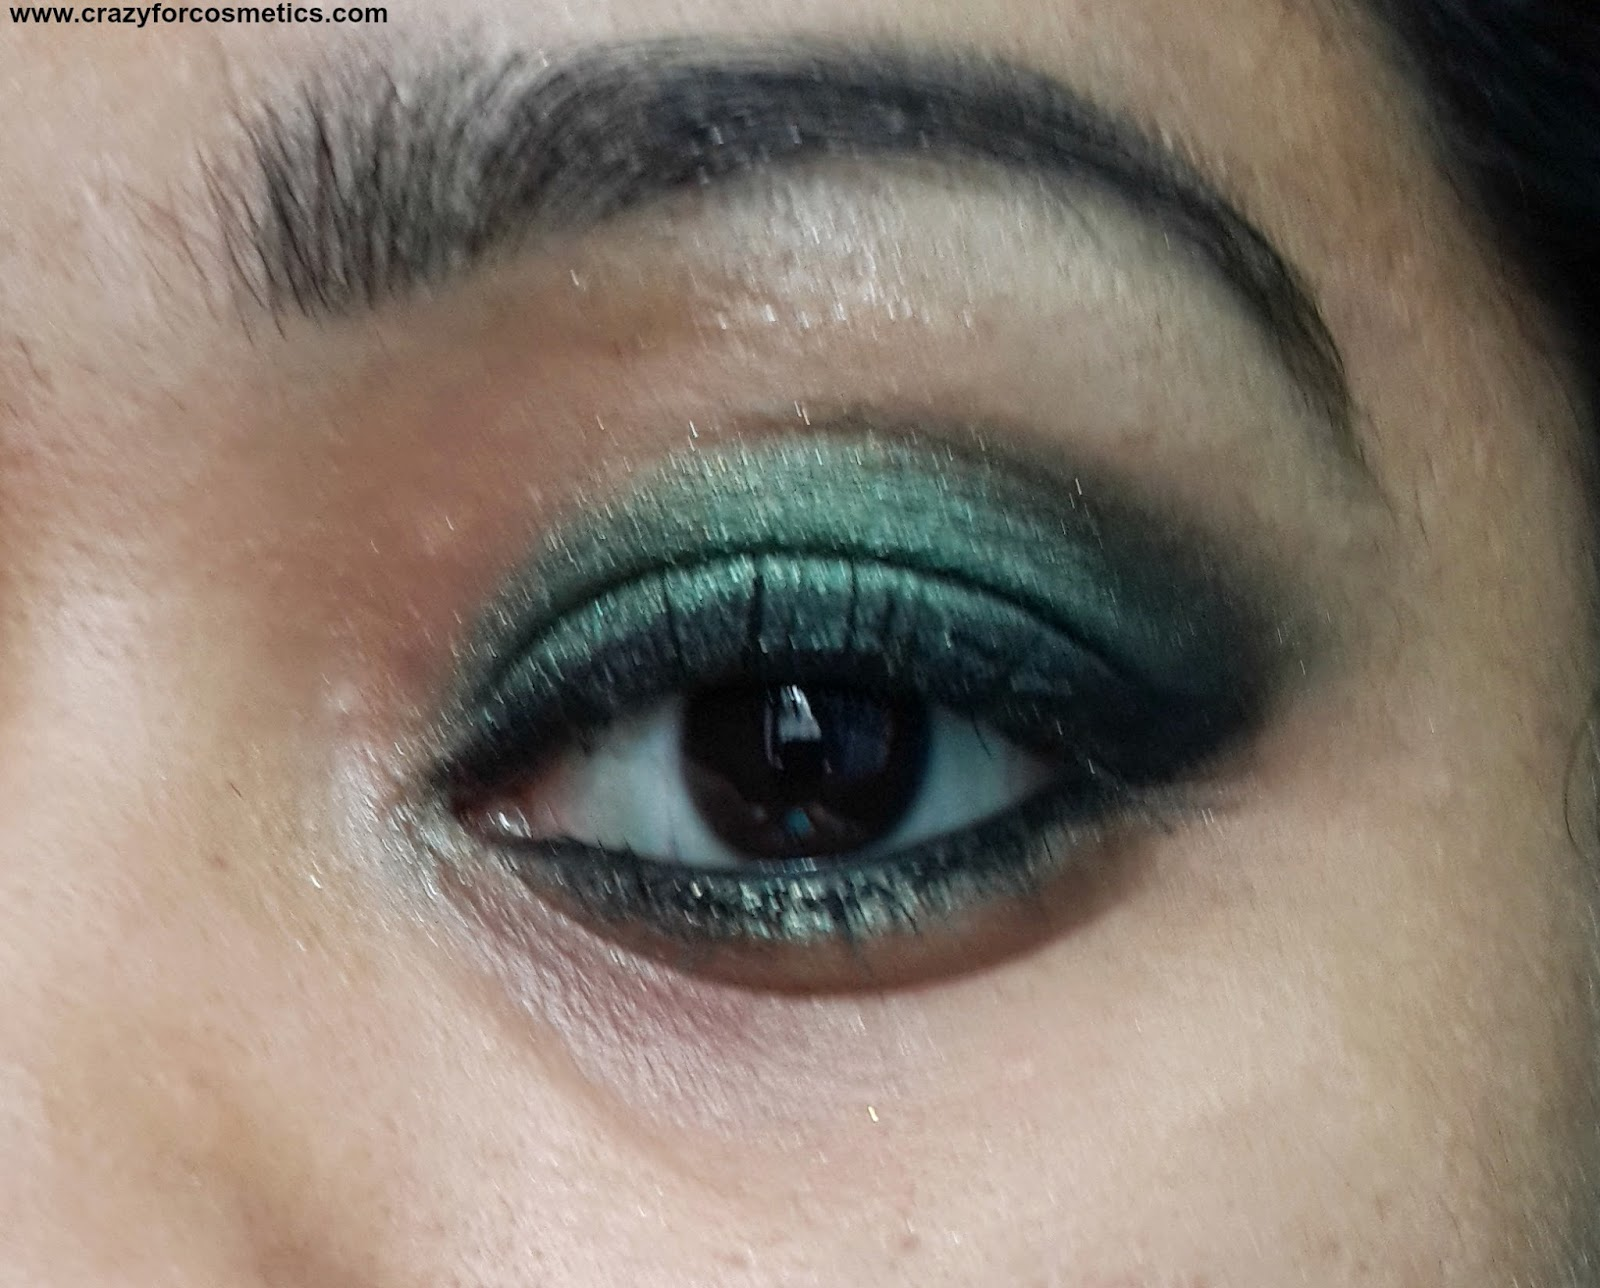 pakistani bridal makeup- pakistani bridal eyemakeup-pakistani bridal eyemakeup pictures- pakistani bridal eyemakeup tutorial-pakistani bridal eyemakeup tips- pakistani bridal eyemakeup step by step- green and black eyeshadow